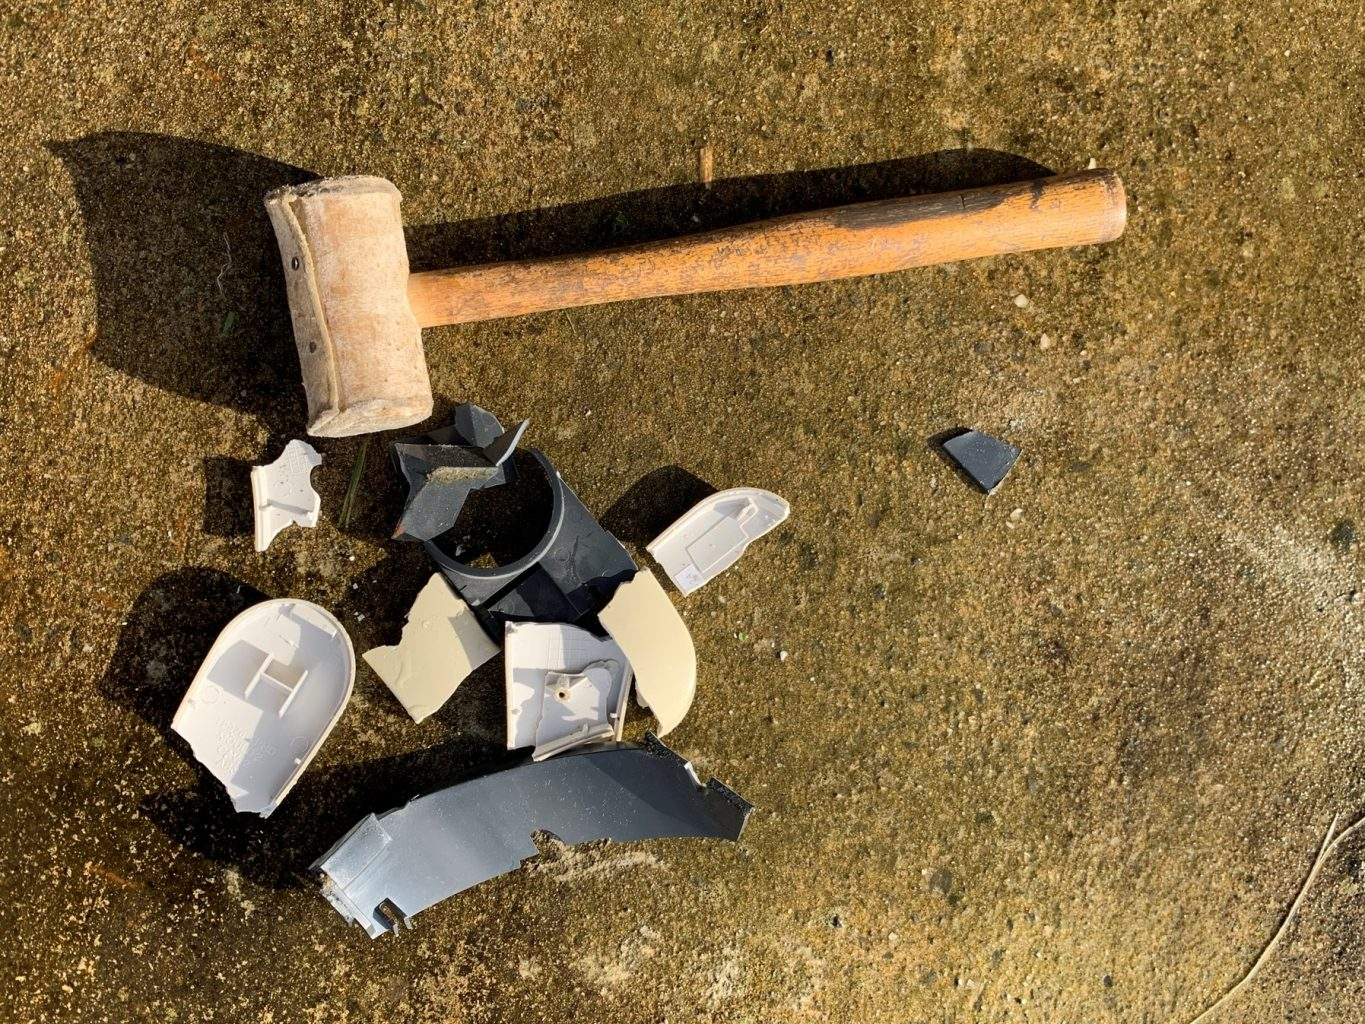 Broken pieces of formed white and grey plastic on the floor alongside a wooden mallet